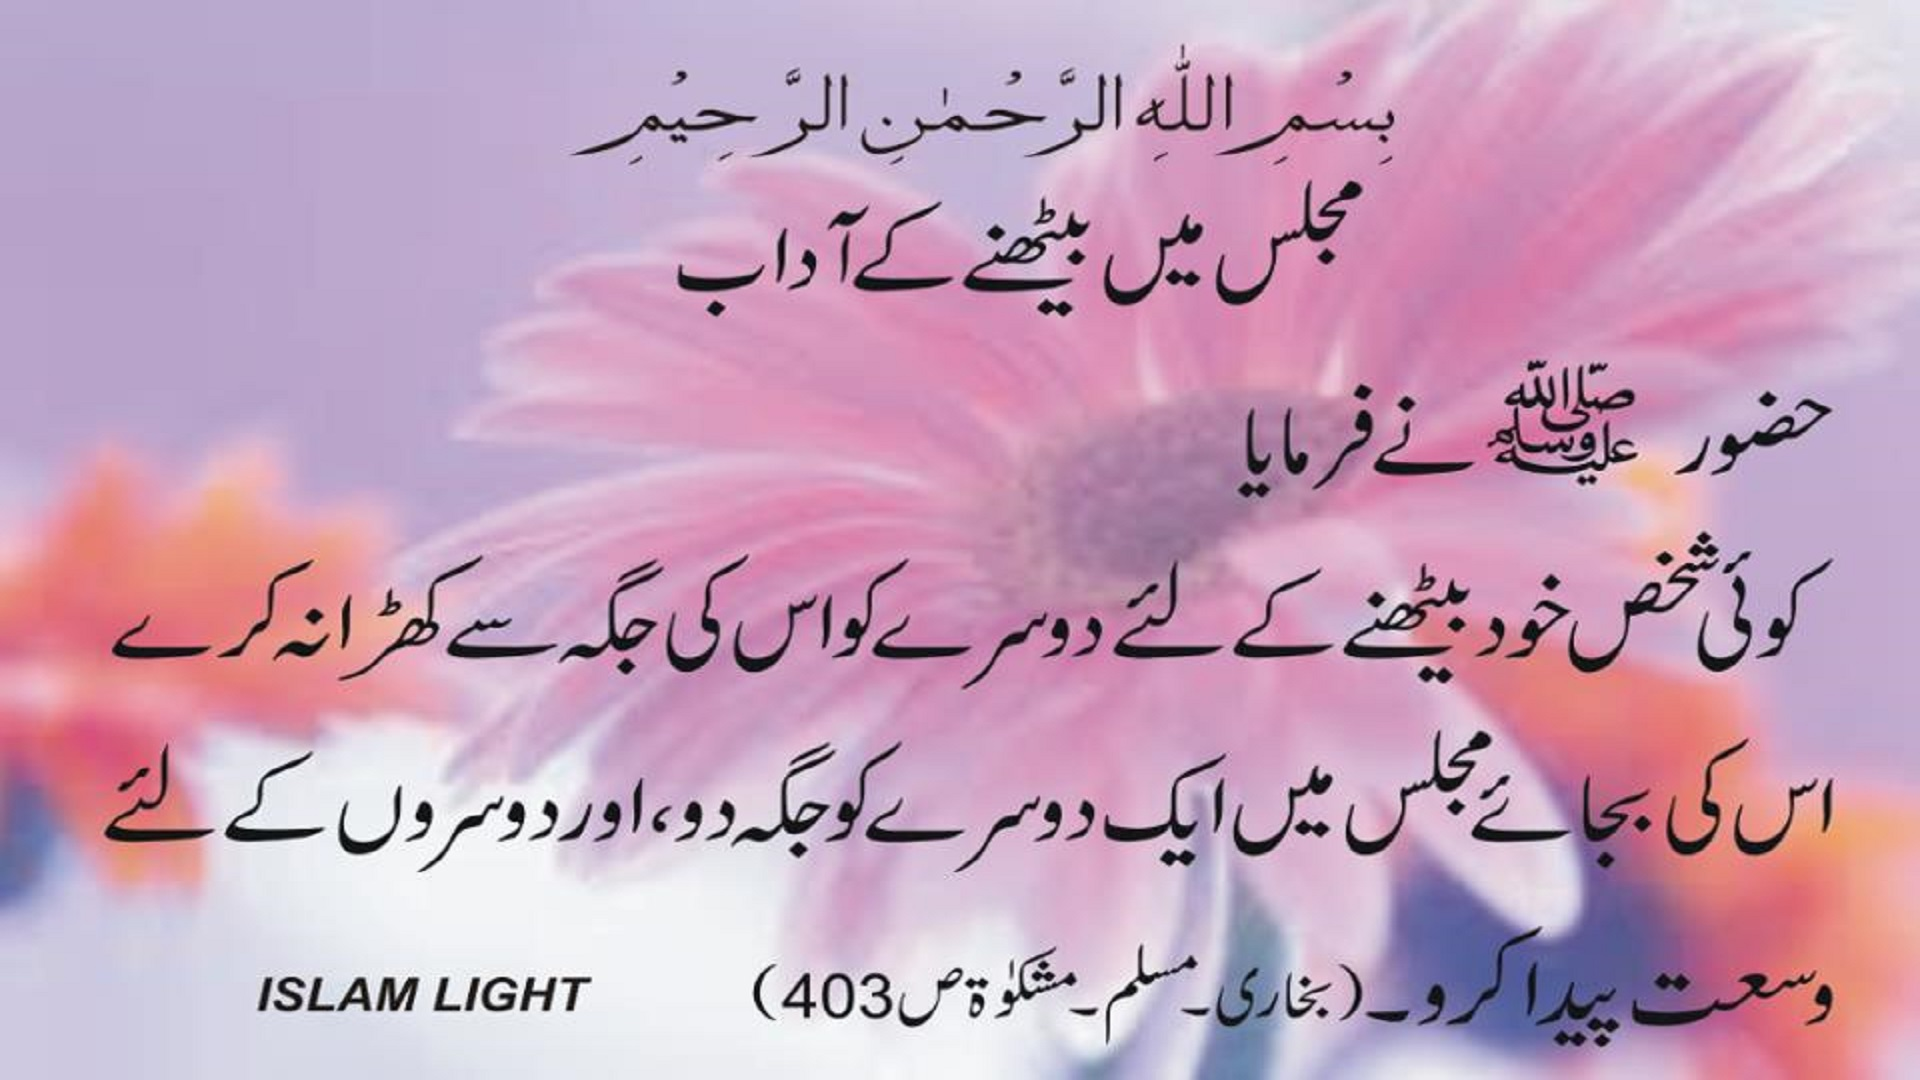 Heart Touching Love Quotes Wallpapers Majlis Mia Bethny K Adab Urdu Hadees Hd Wallpapers Free